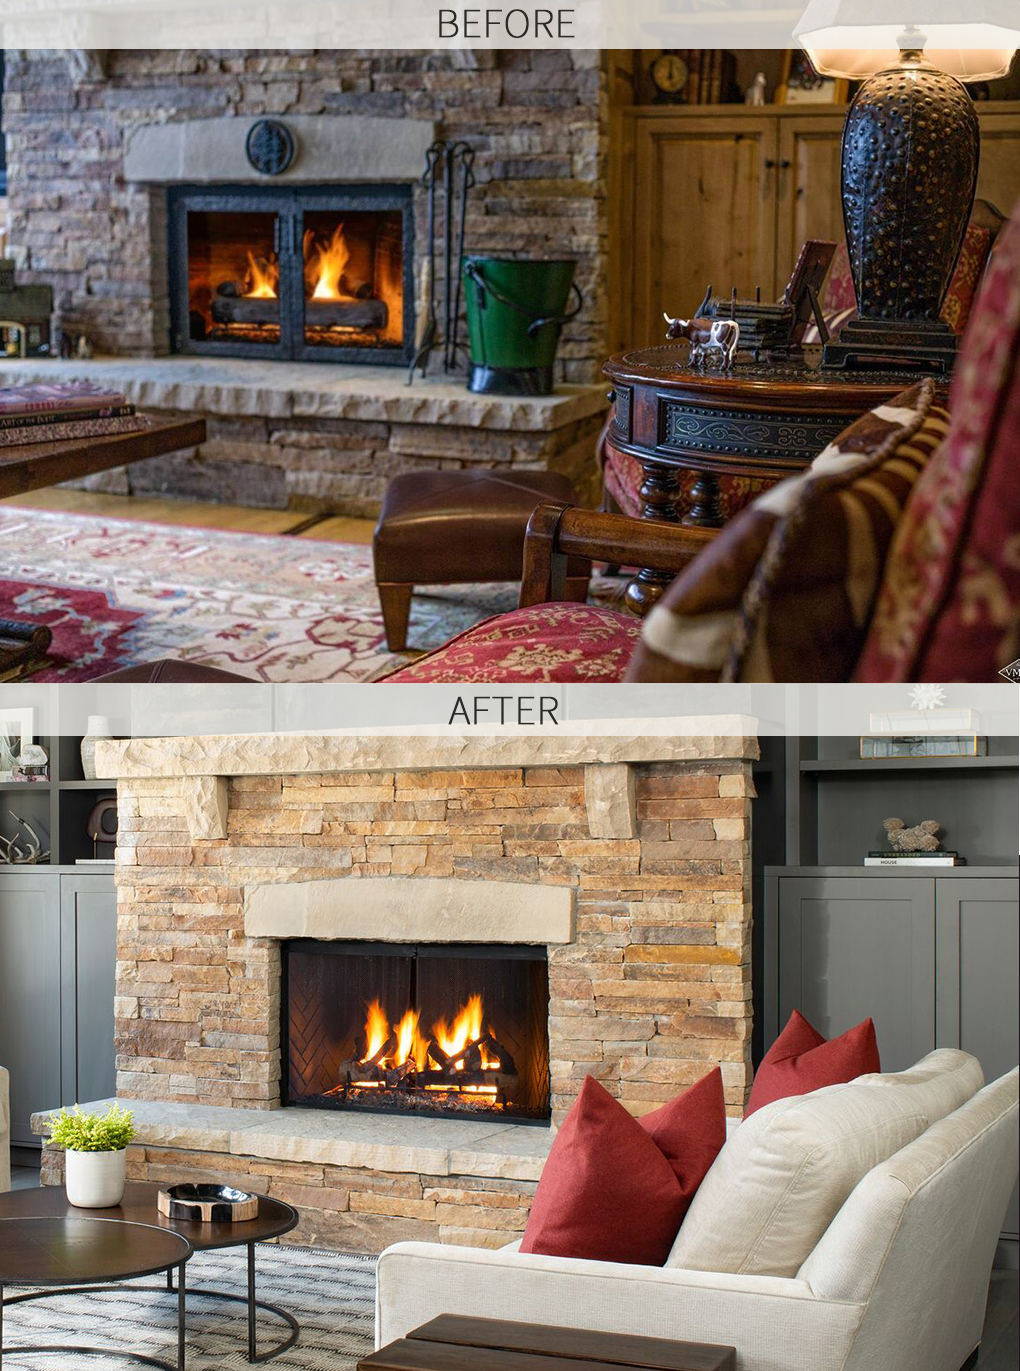 fireplace-living-room-interior-design-river-and-lime-before-and-after